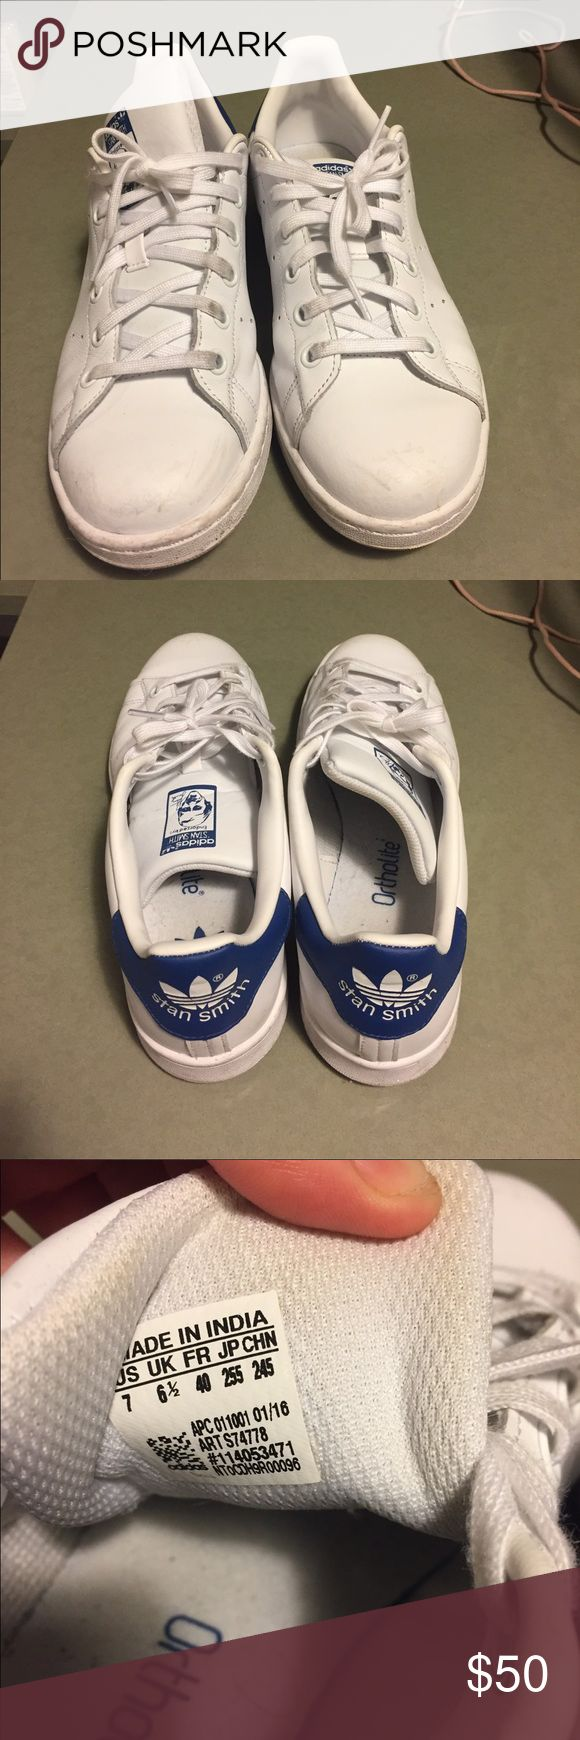 Adidas Stan Smiths (blue) Slightly worn but real clean, still. Just don't really wear them much anymore. Men's 7/ women's 8.5, fits a women's 9 adidas Shoes Sneakers